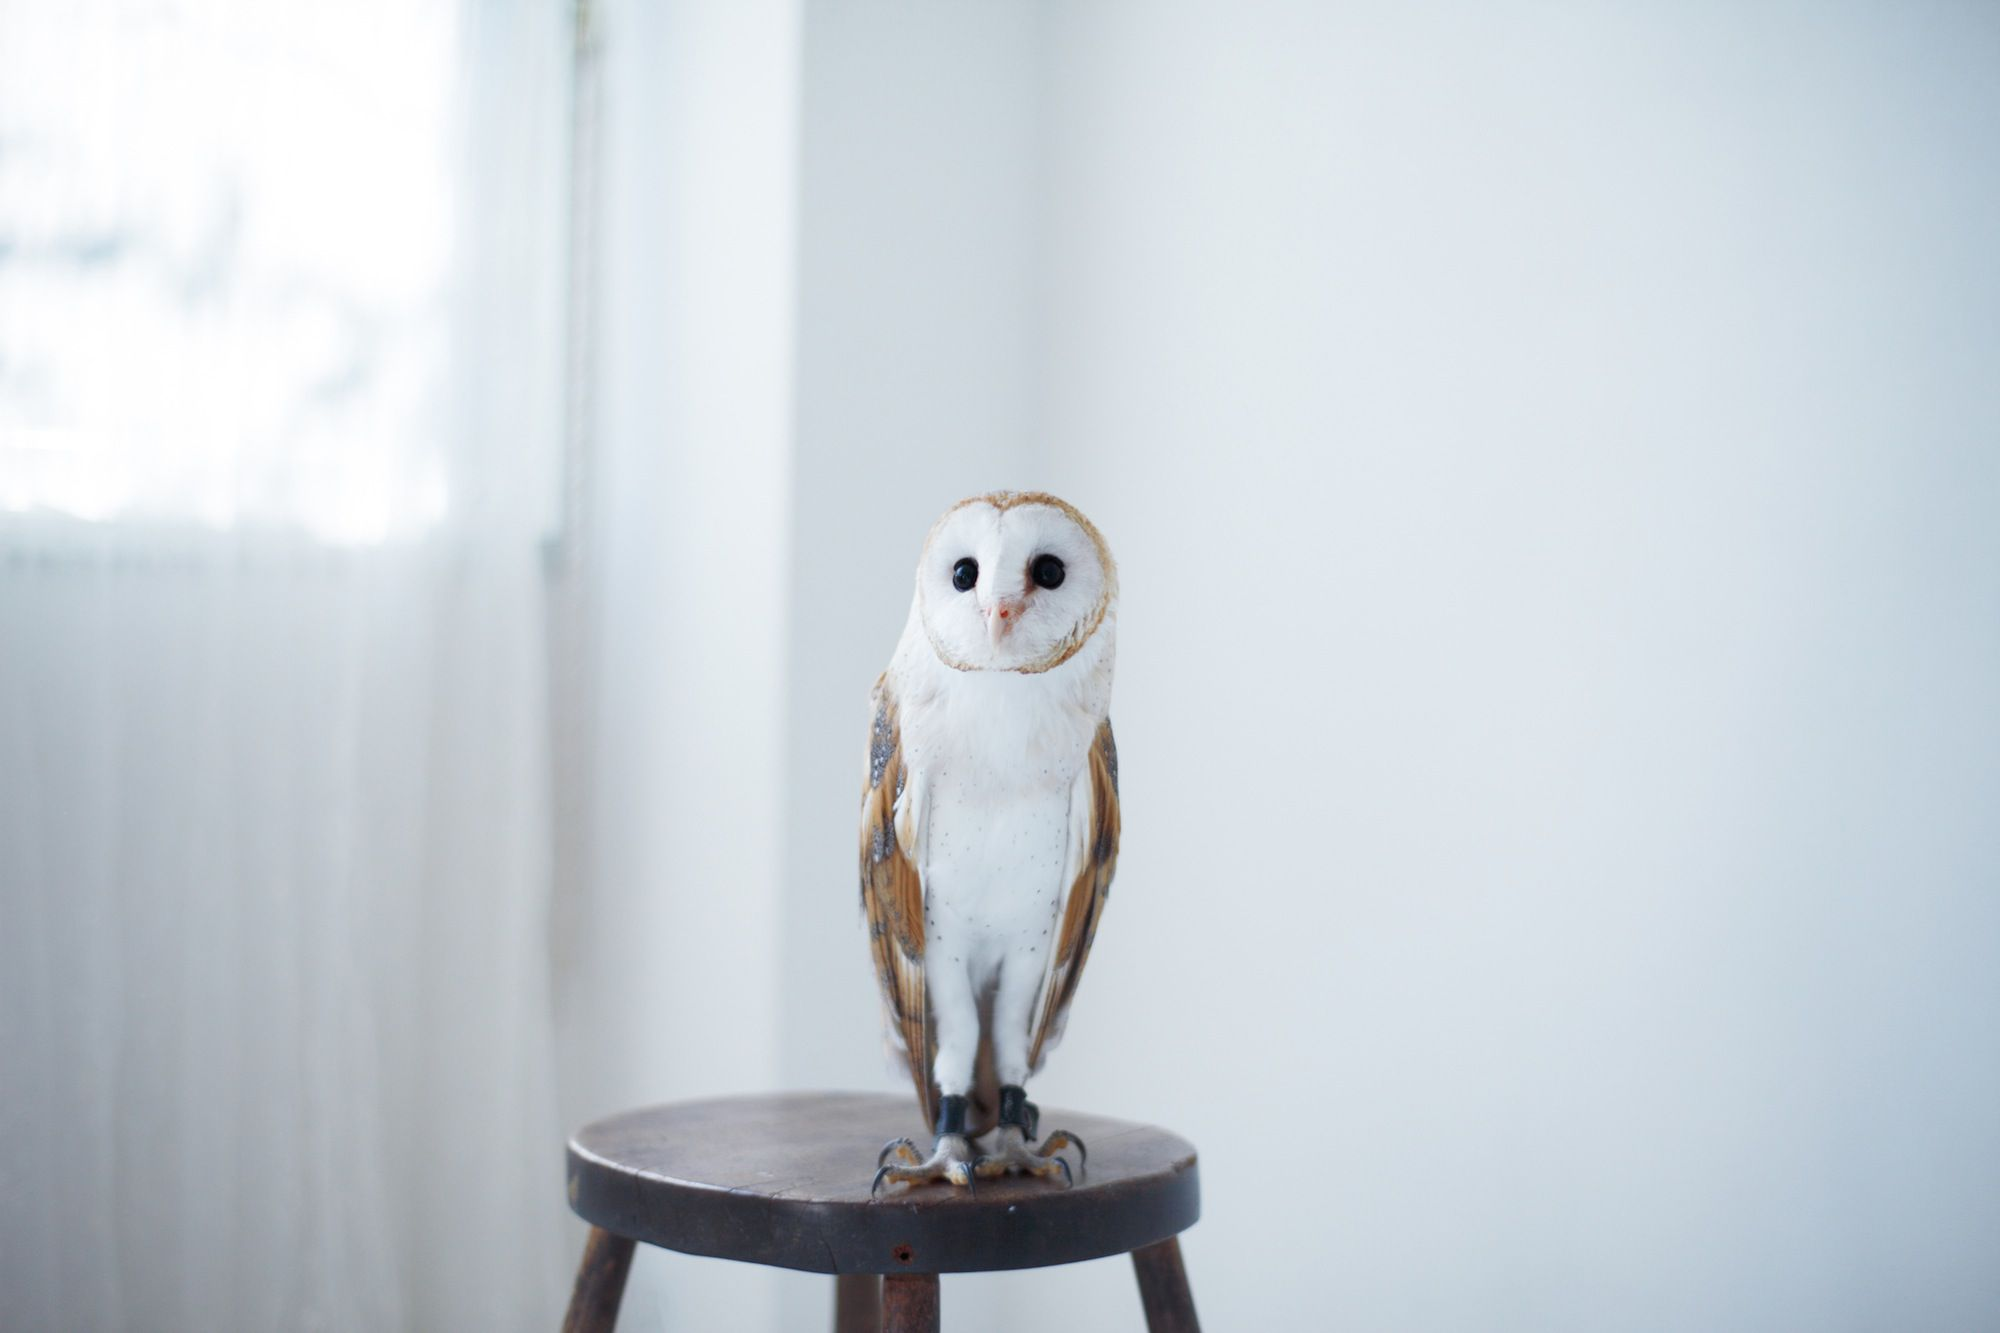 Do Owls Make Good Pets Things You Should Consider - Meet the cuddly owl who loves landing on people